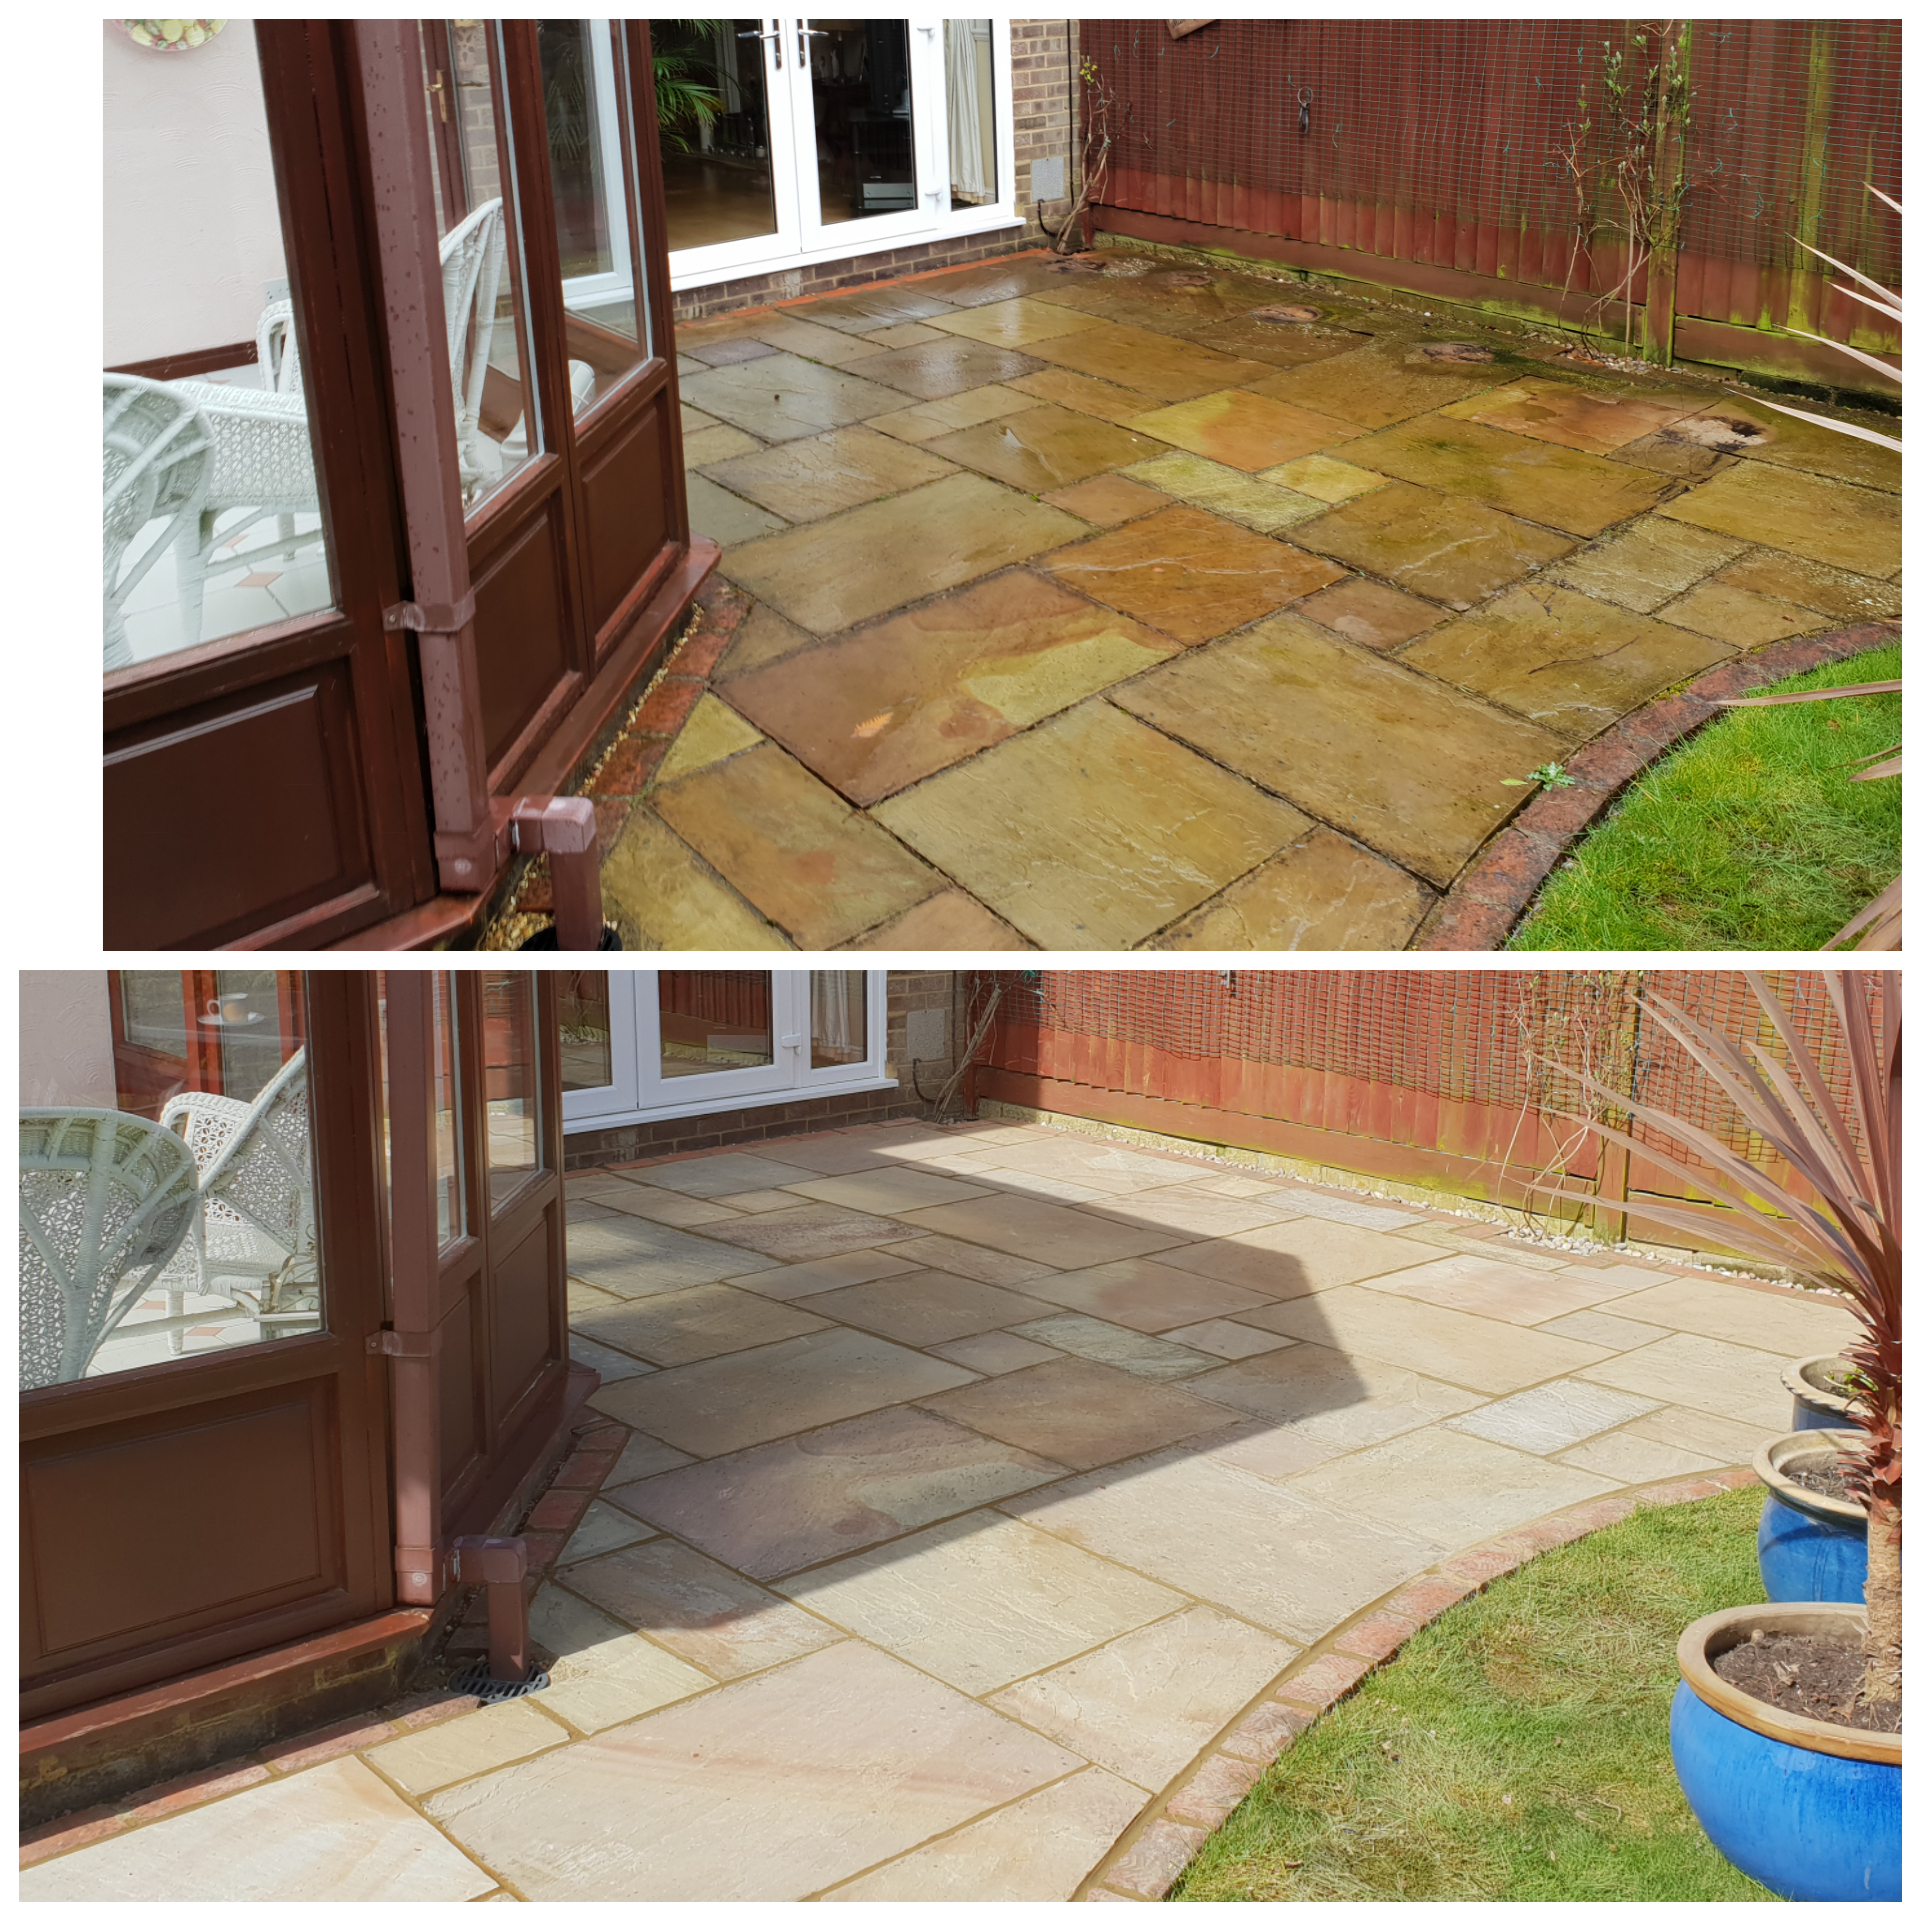 Jet washed patio and re grout